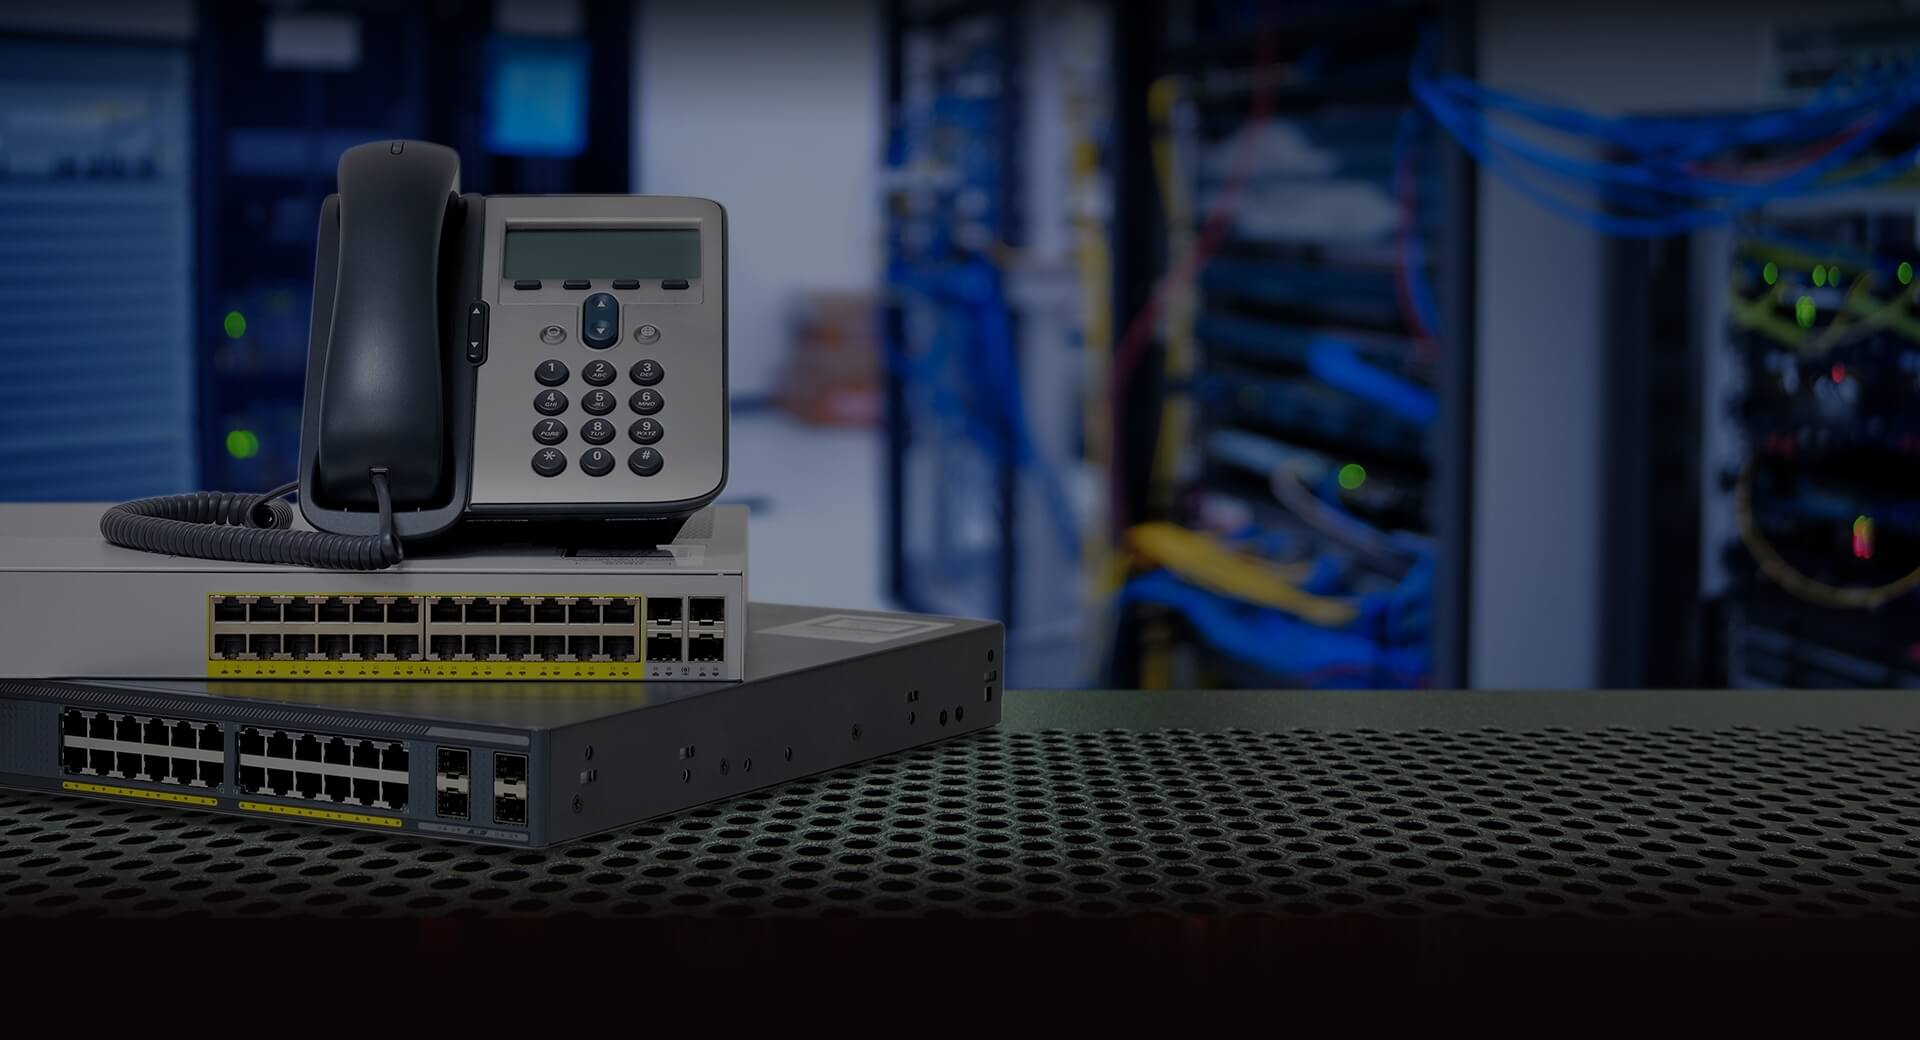 Datamax Unified Communications VoIP